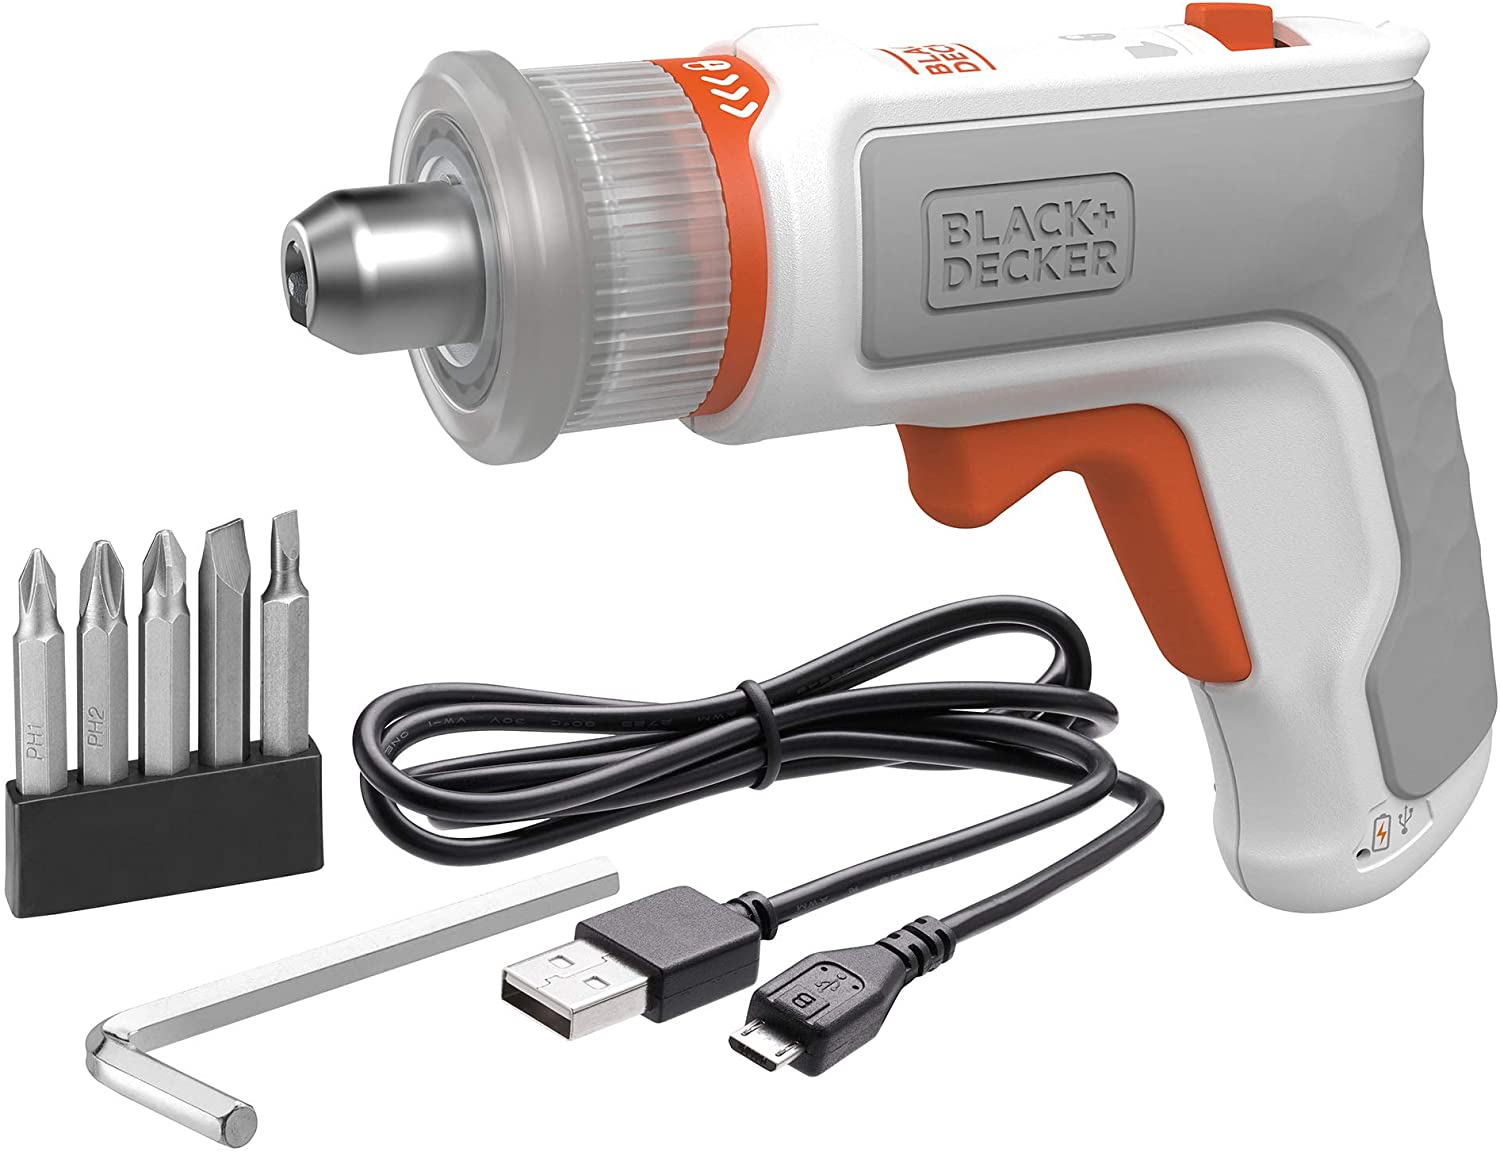 beyond by BLACK+DECKER 4V MAX Cordless Screwdriver, Hex, L-Shaped, 2-Inch Assorted Bits (BCRTA601WAPB)